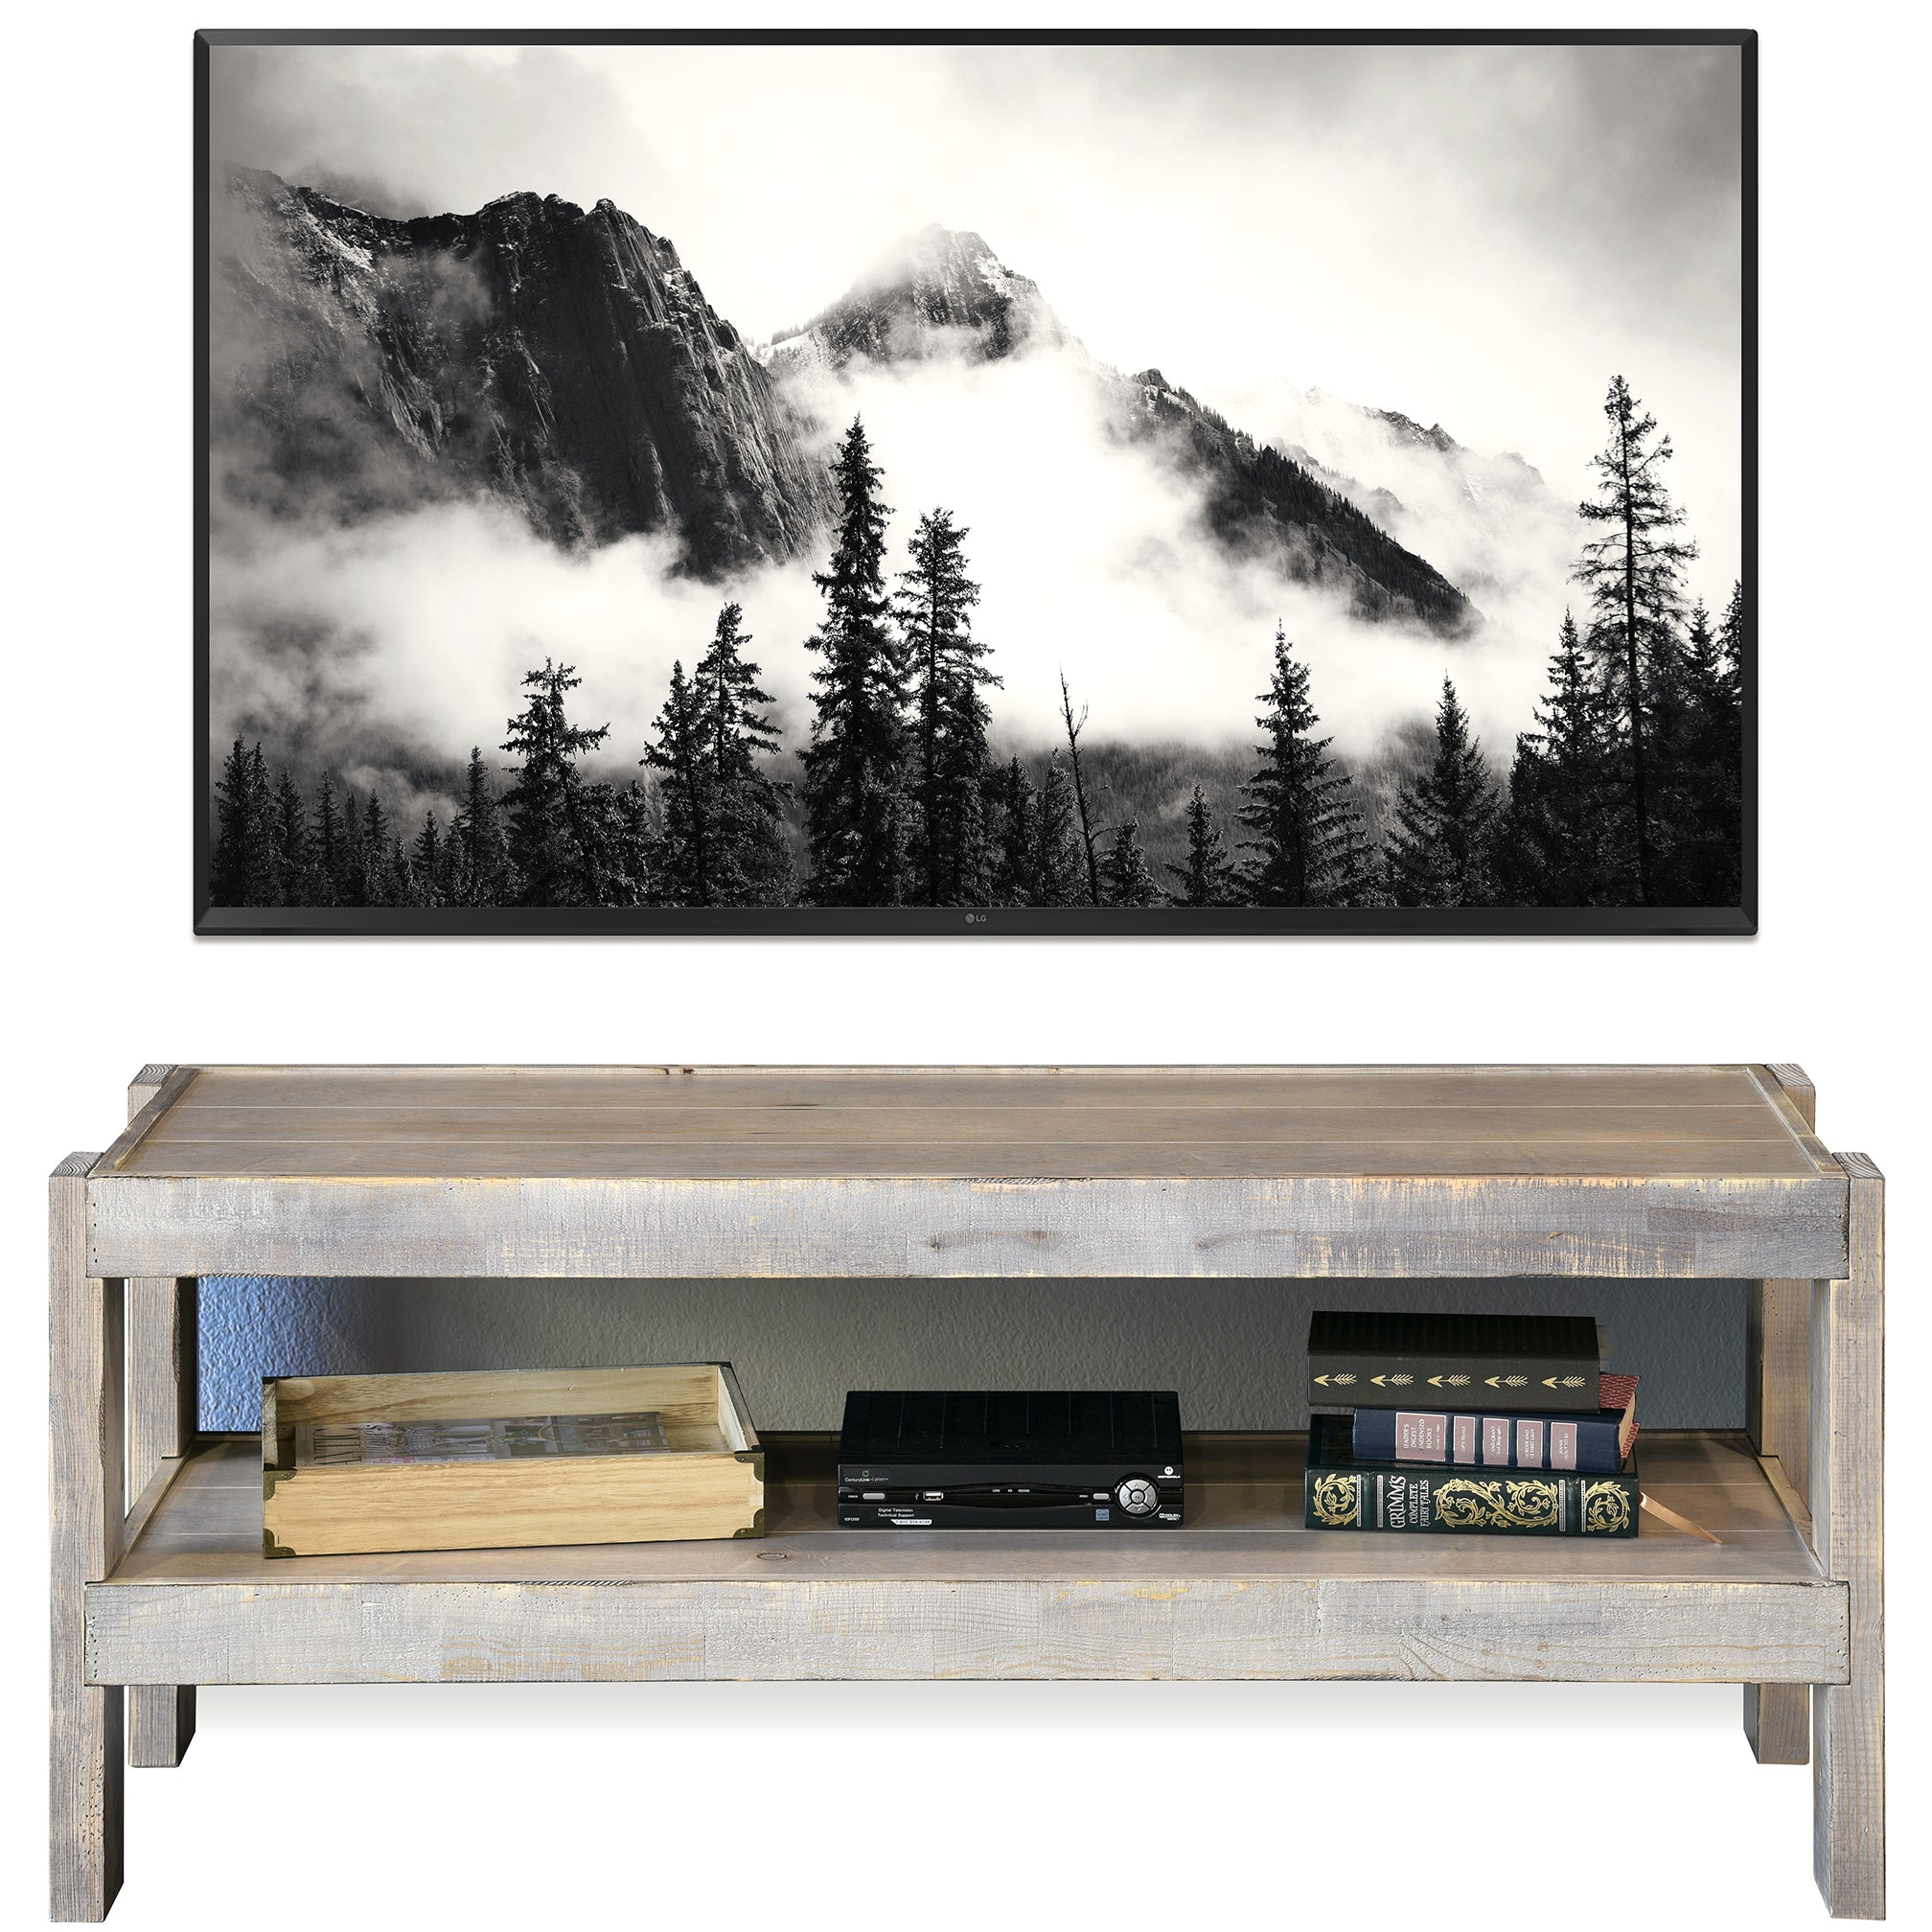 Gray Rustic Reclaimed Pallet Wood Style TV Stand Console - presEARTH - Lakewood